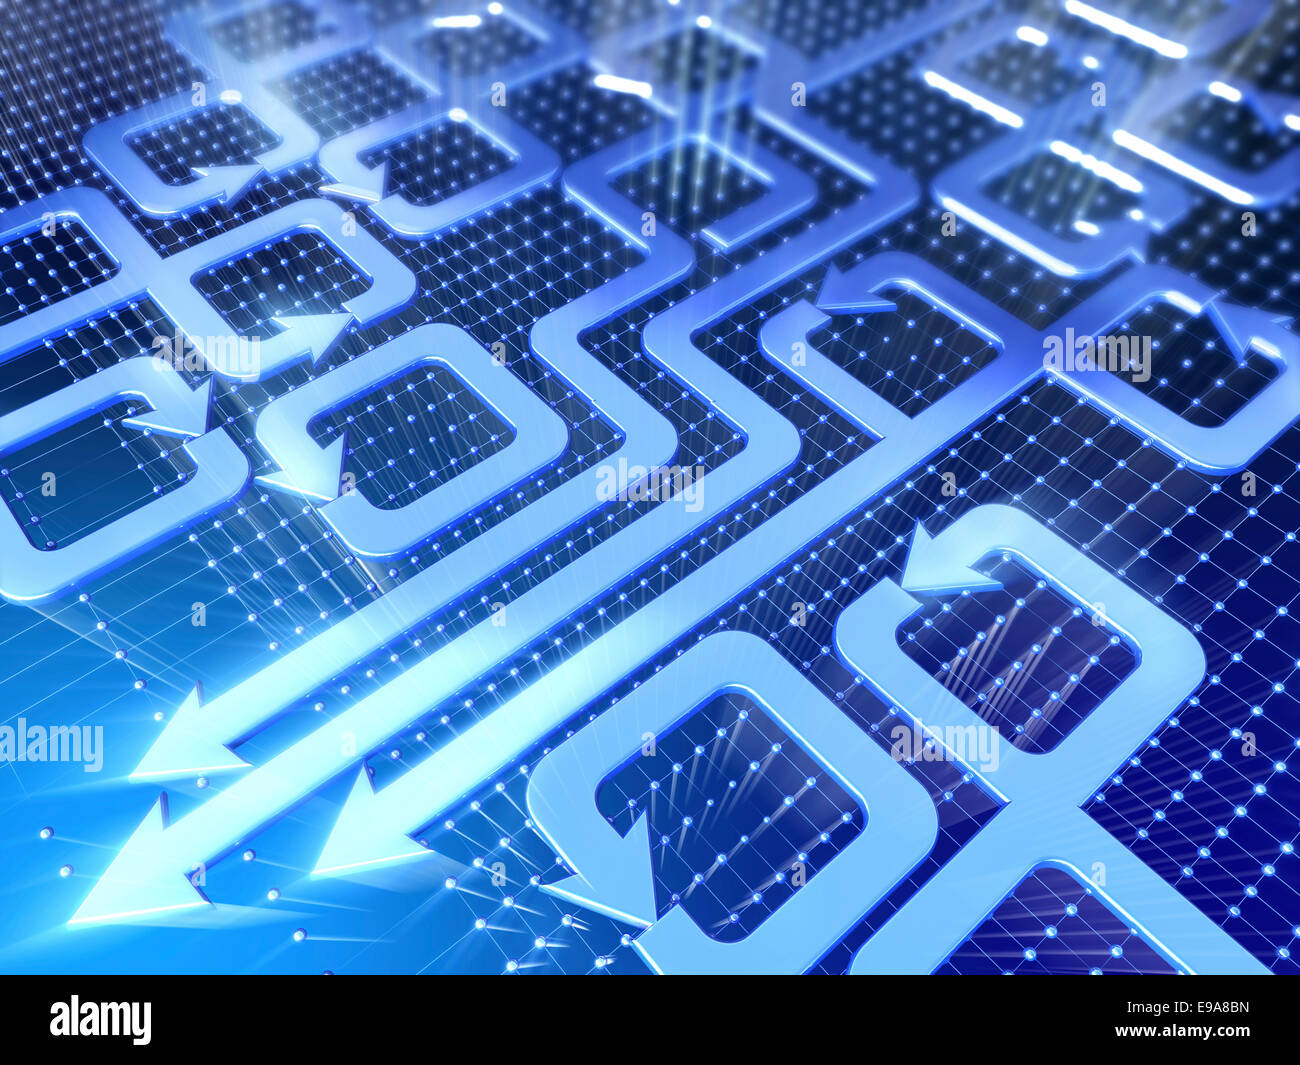 Abstract technology 3d illustration. Different arrows on blue background. - Stock Image